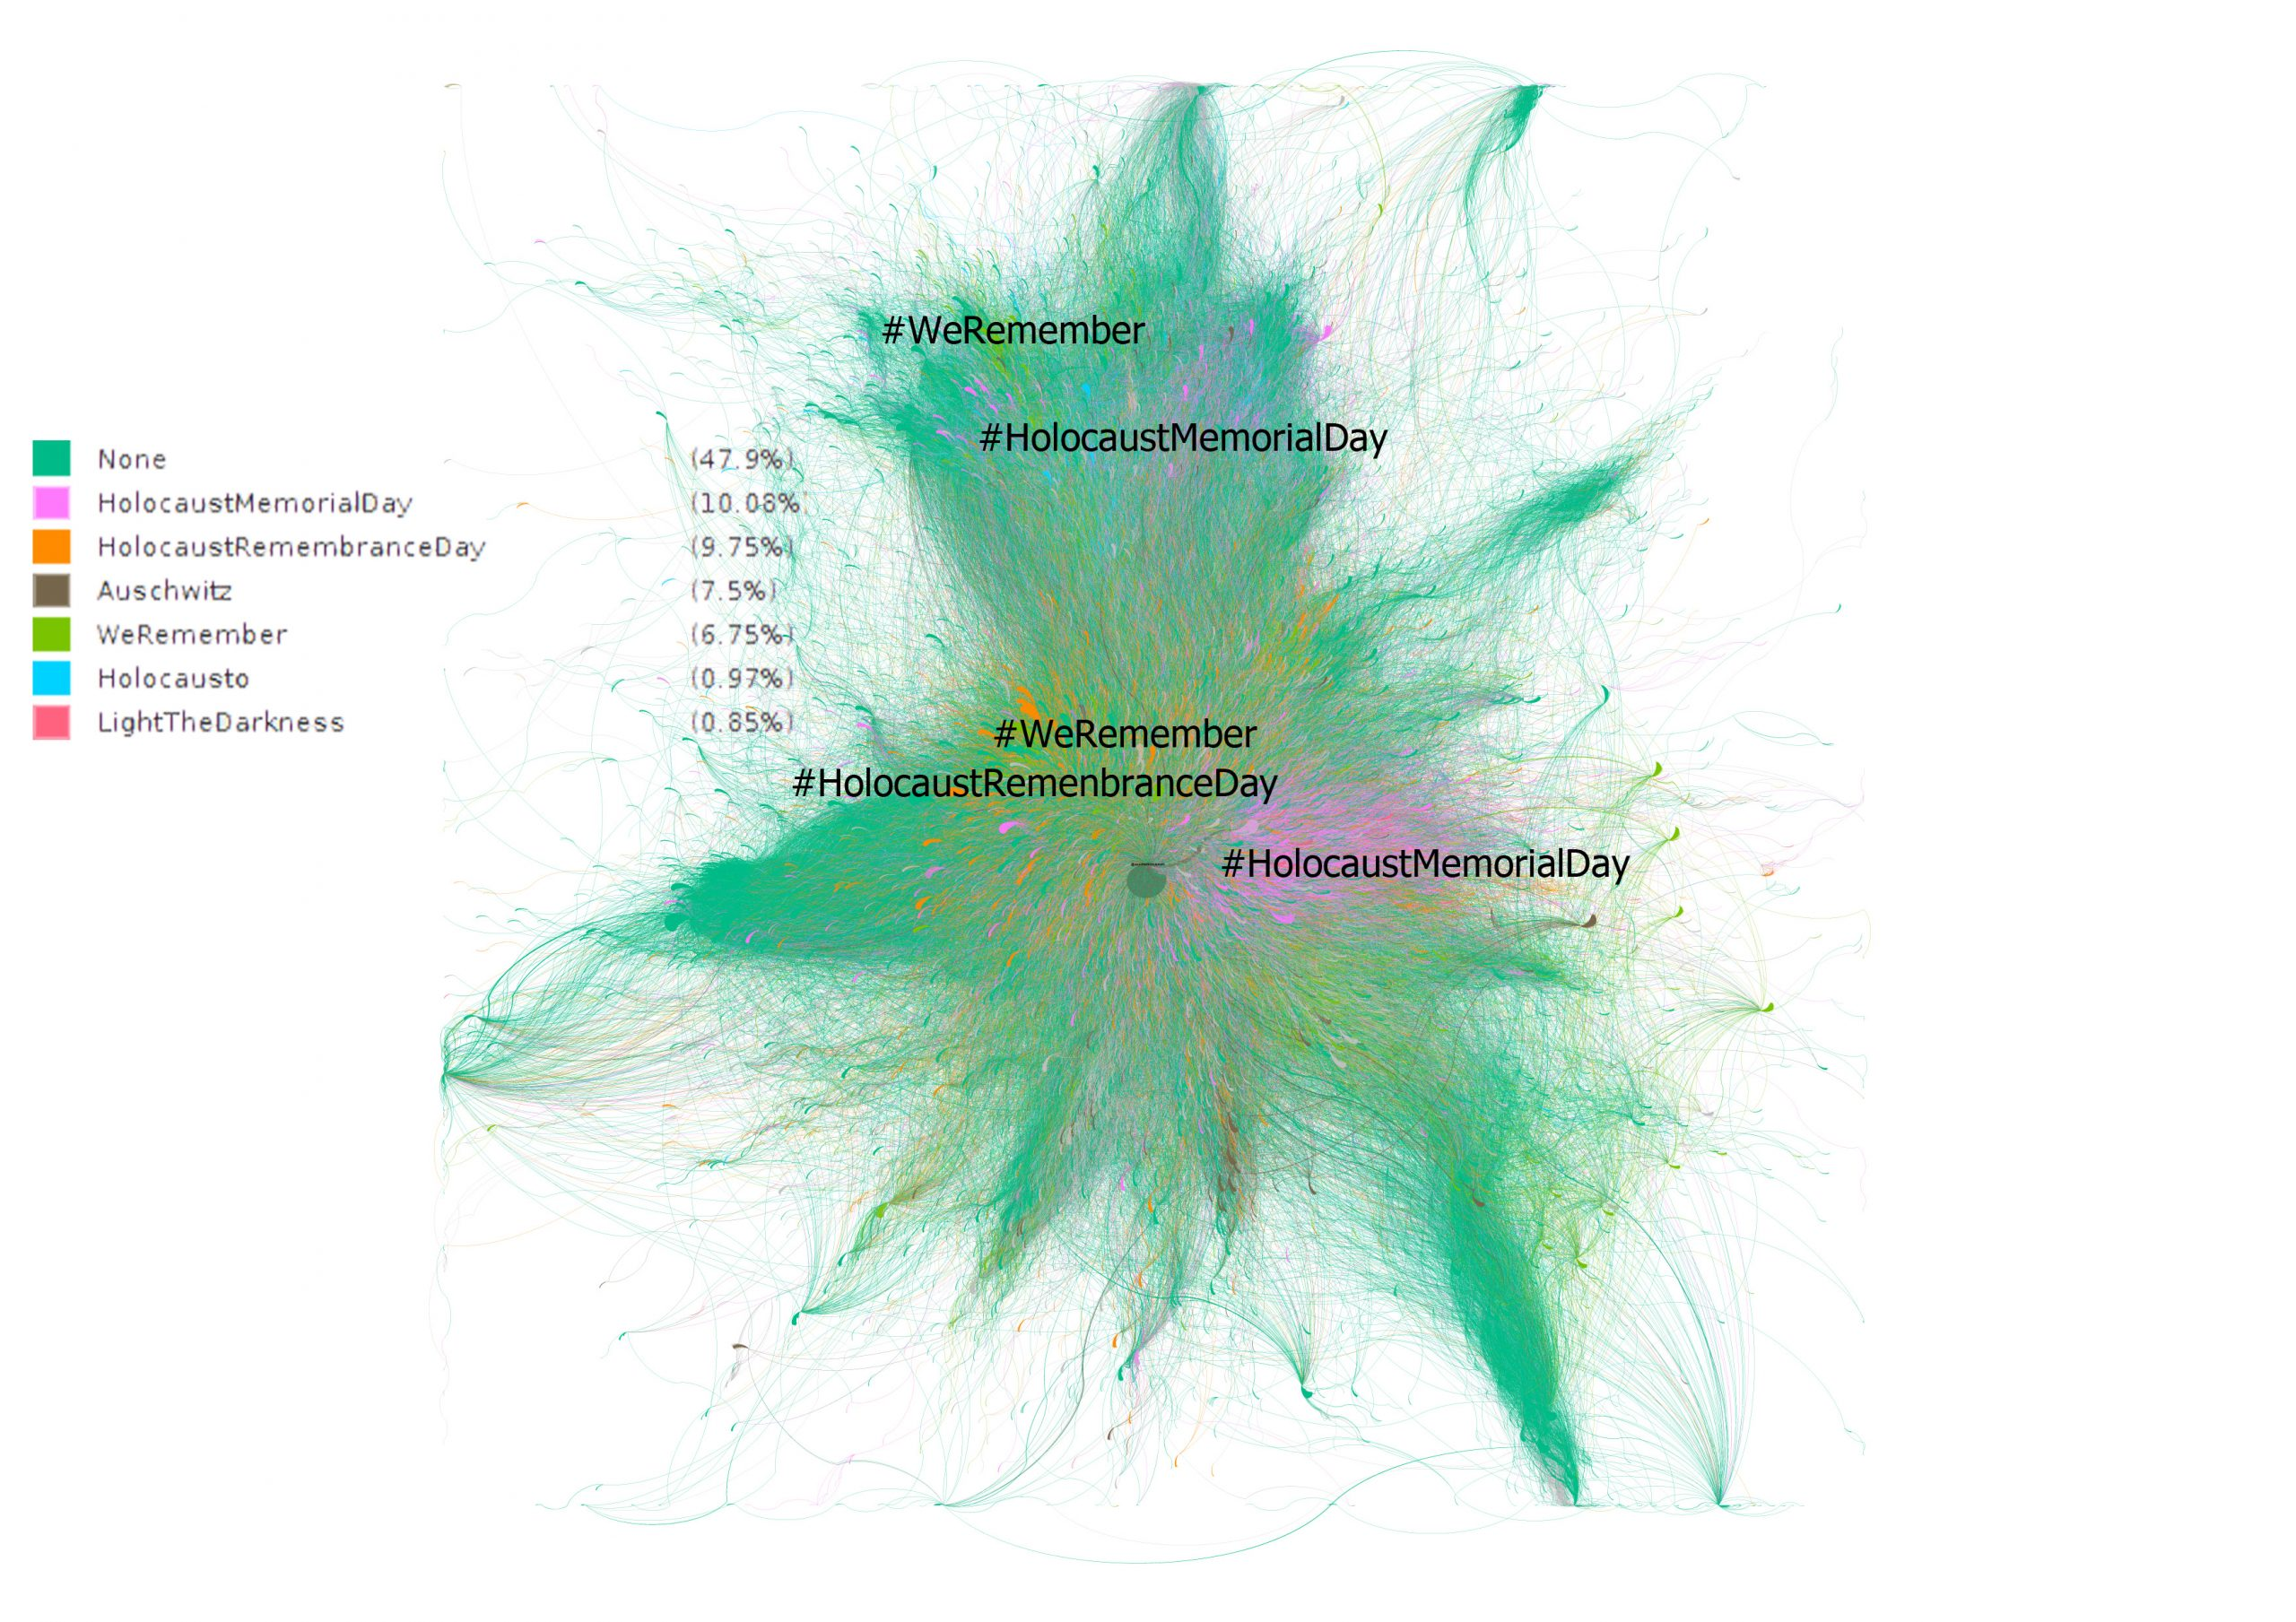 GRAPH 4. USE OF HASHTAGS BY COMMUNITIES